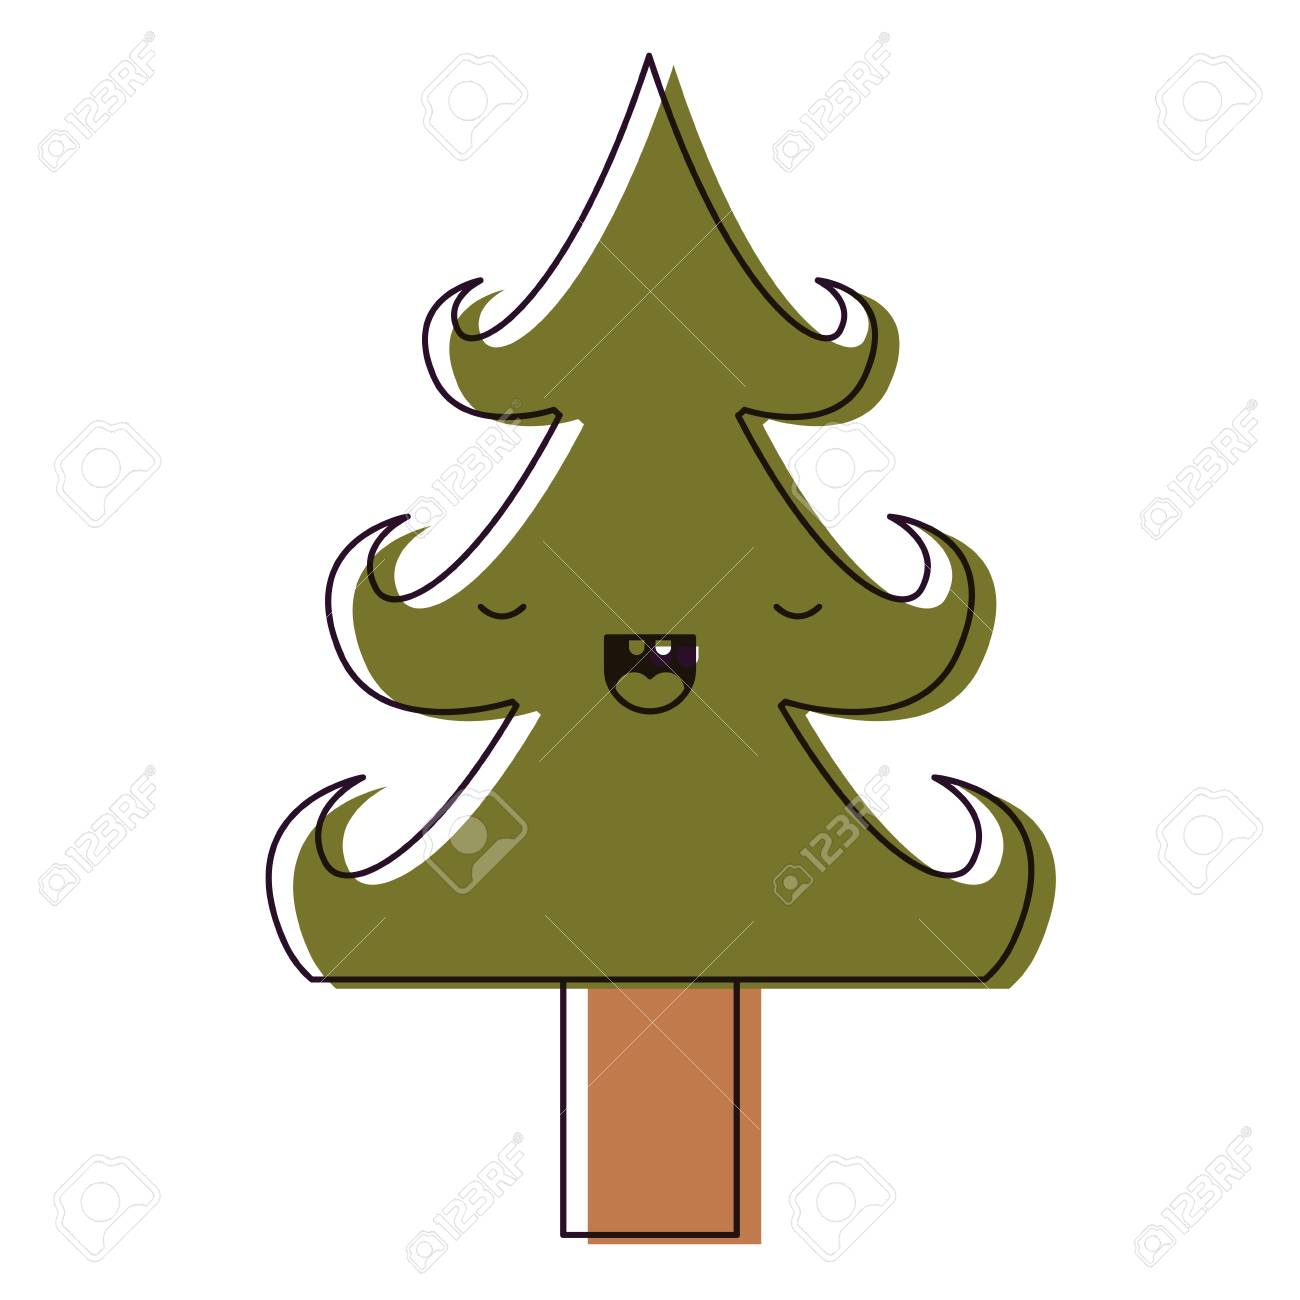 A Cute Christmas Tree With Eyes Closed Happiness Expression On Royalty Free Cliparts Vectors And Stock Illustration Image 87572286 Cartoon christmas tree with city. 123rf com